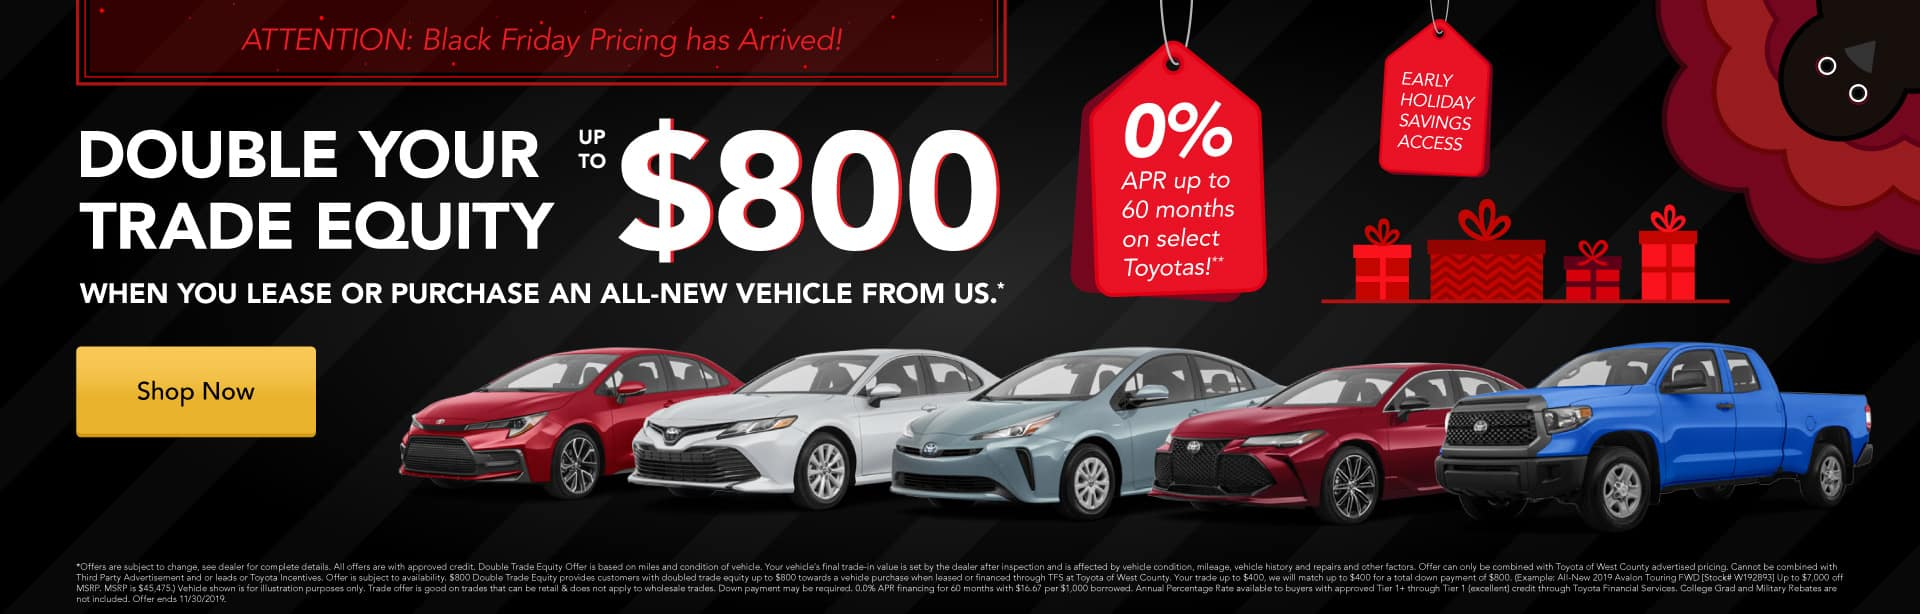 Double your trade equity up to $800 when you lease or purchase an All-New vehicle from us.